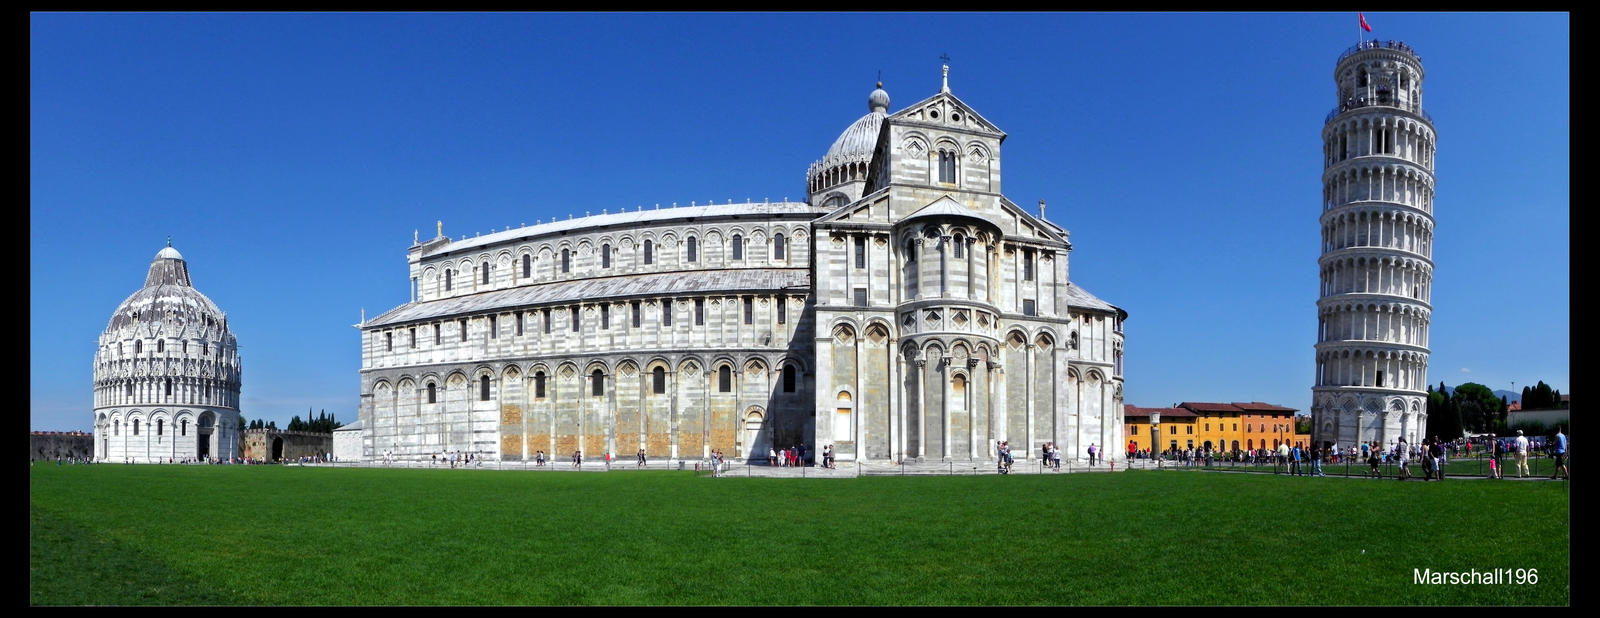 Piazza dei Miracoli by marschall196